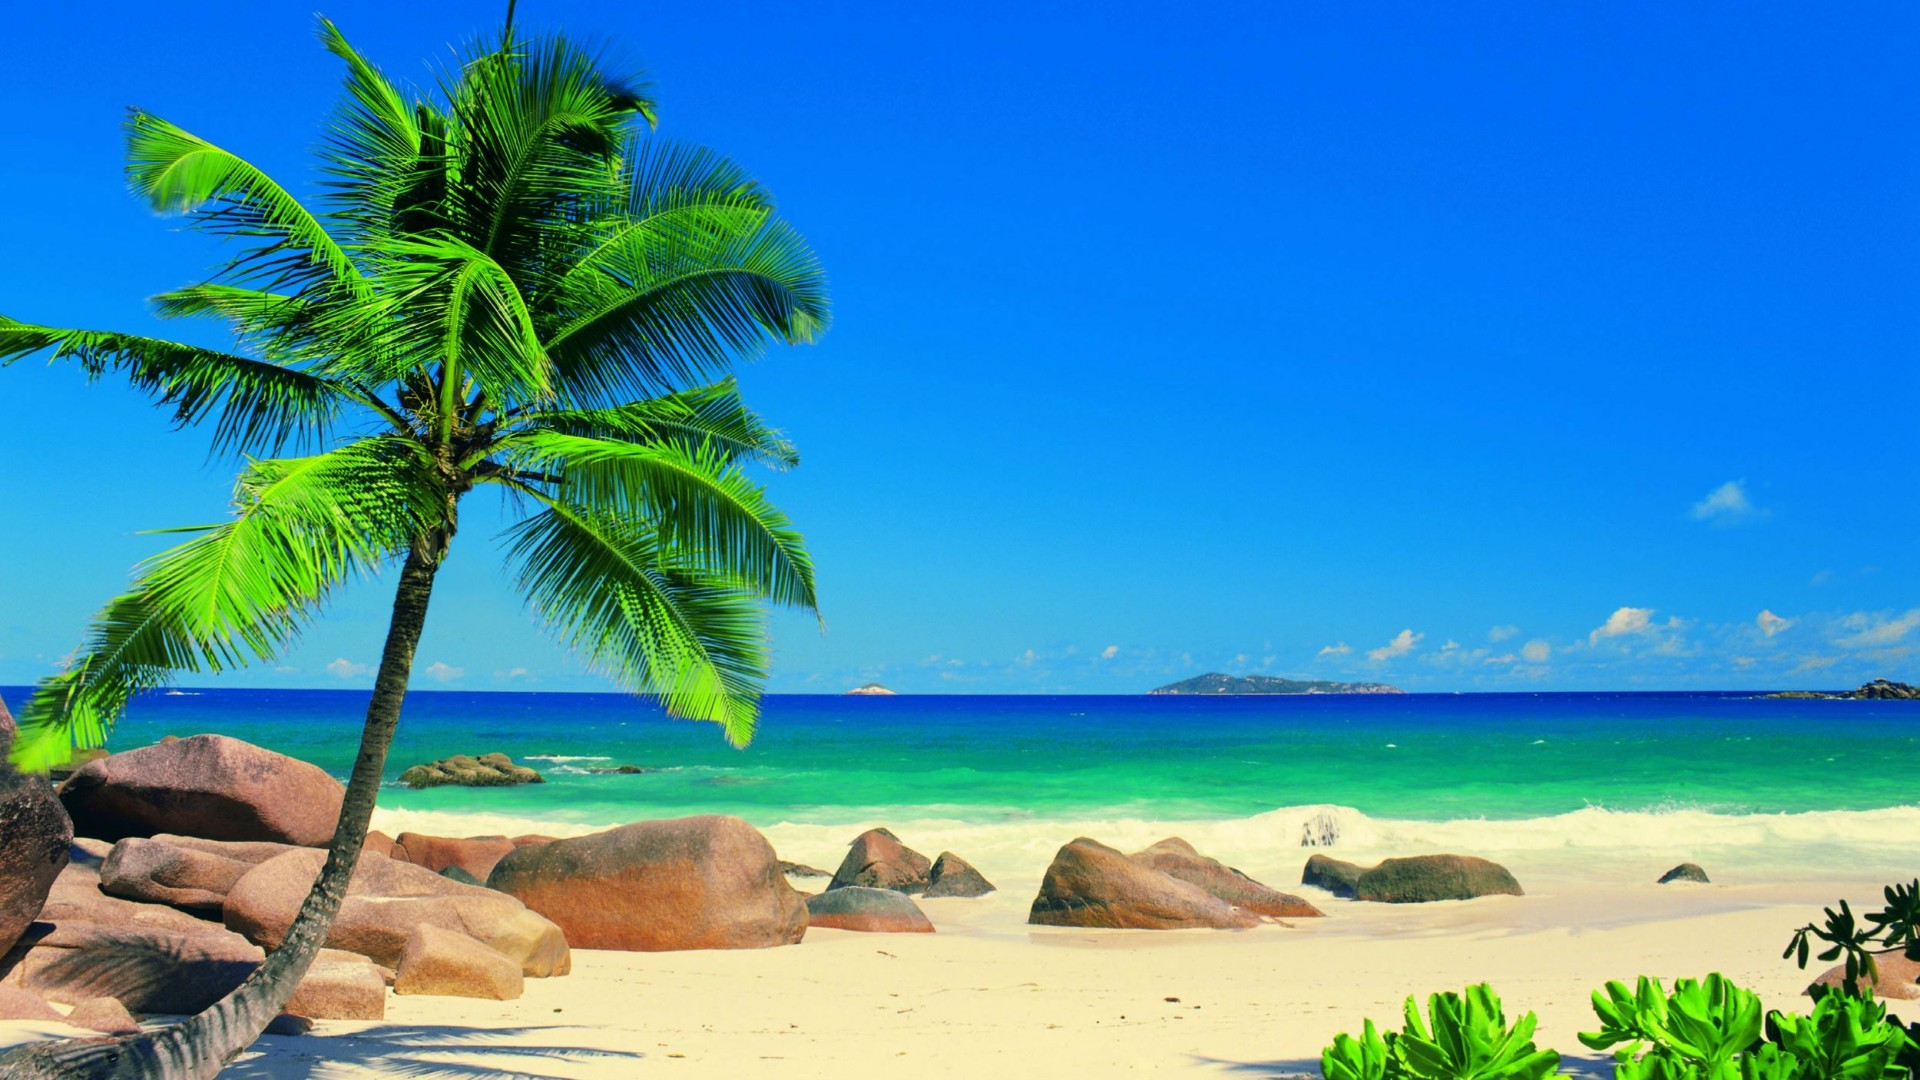 Seychelles - Exotic beach with palm tree  wallpaper